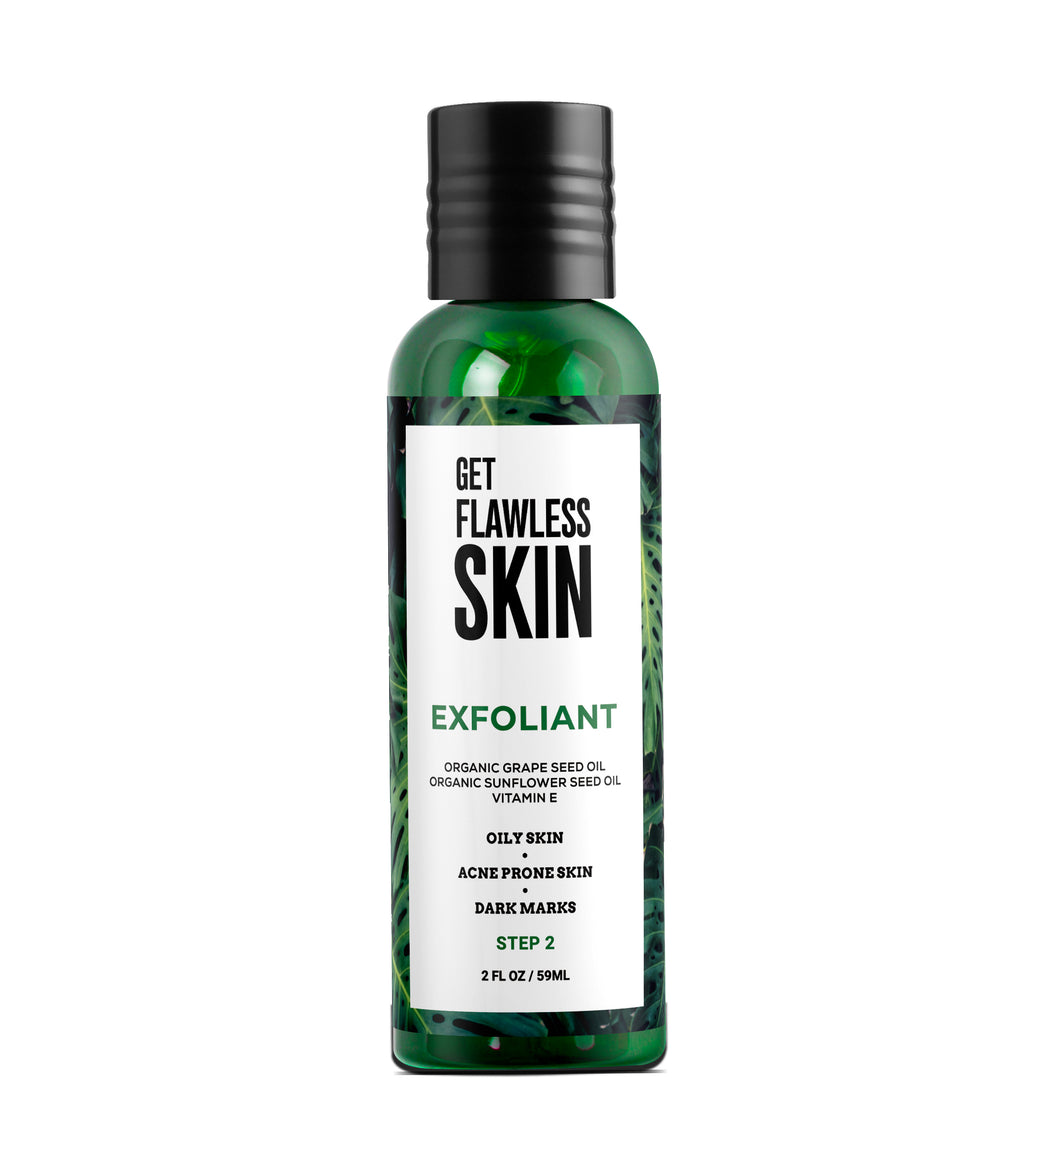 Gel-Facial Exfoliant - Get Flawless Skin